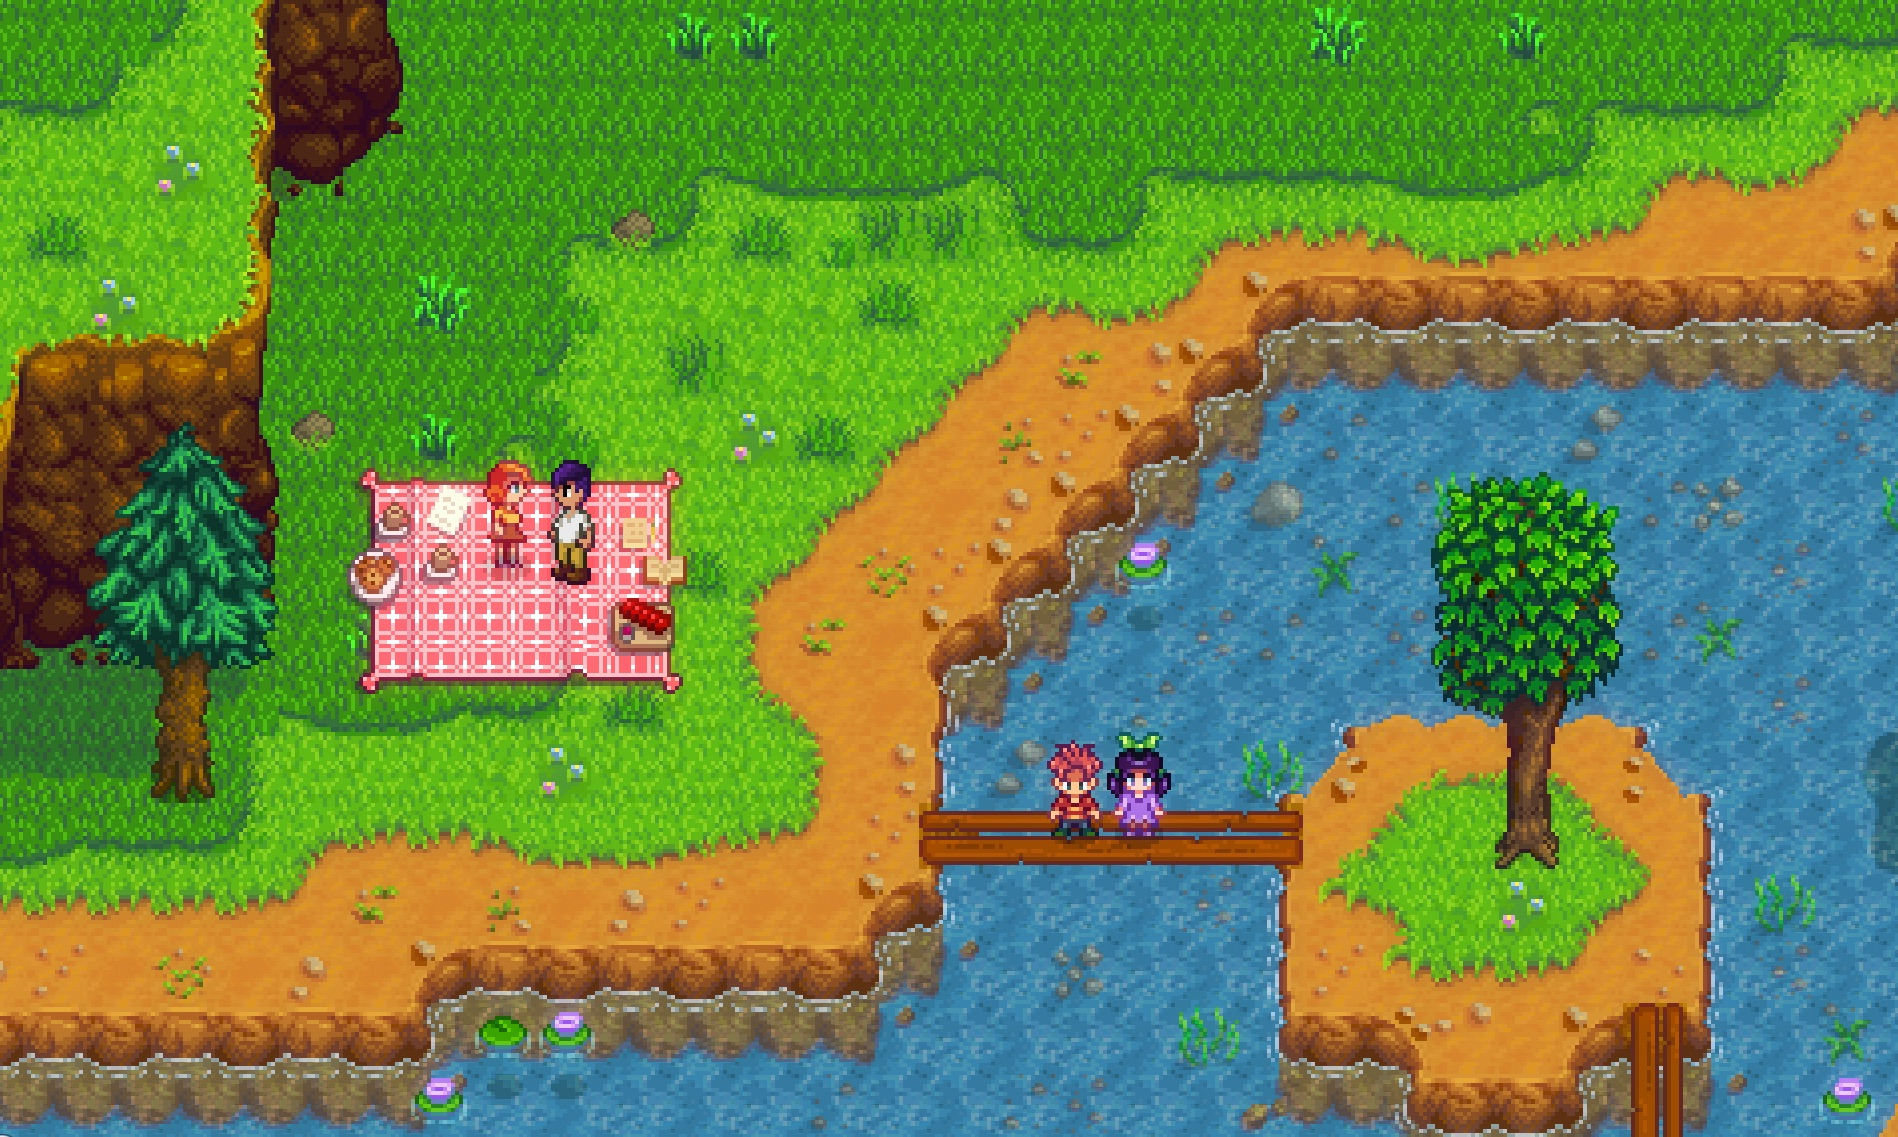 Stardew Valley screenshot of a male                     player character having a picnic in the woods with a redhead female named Penny, as two town children stand on a bridge over a river.